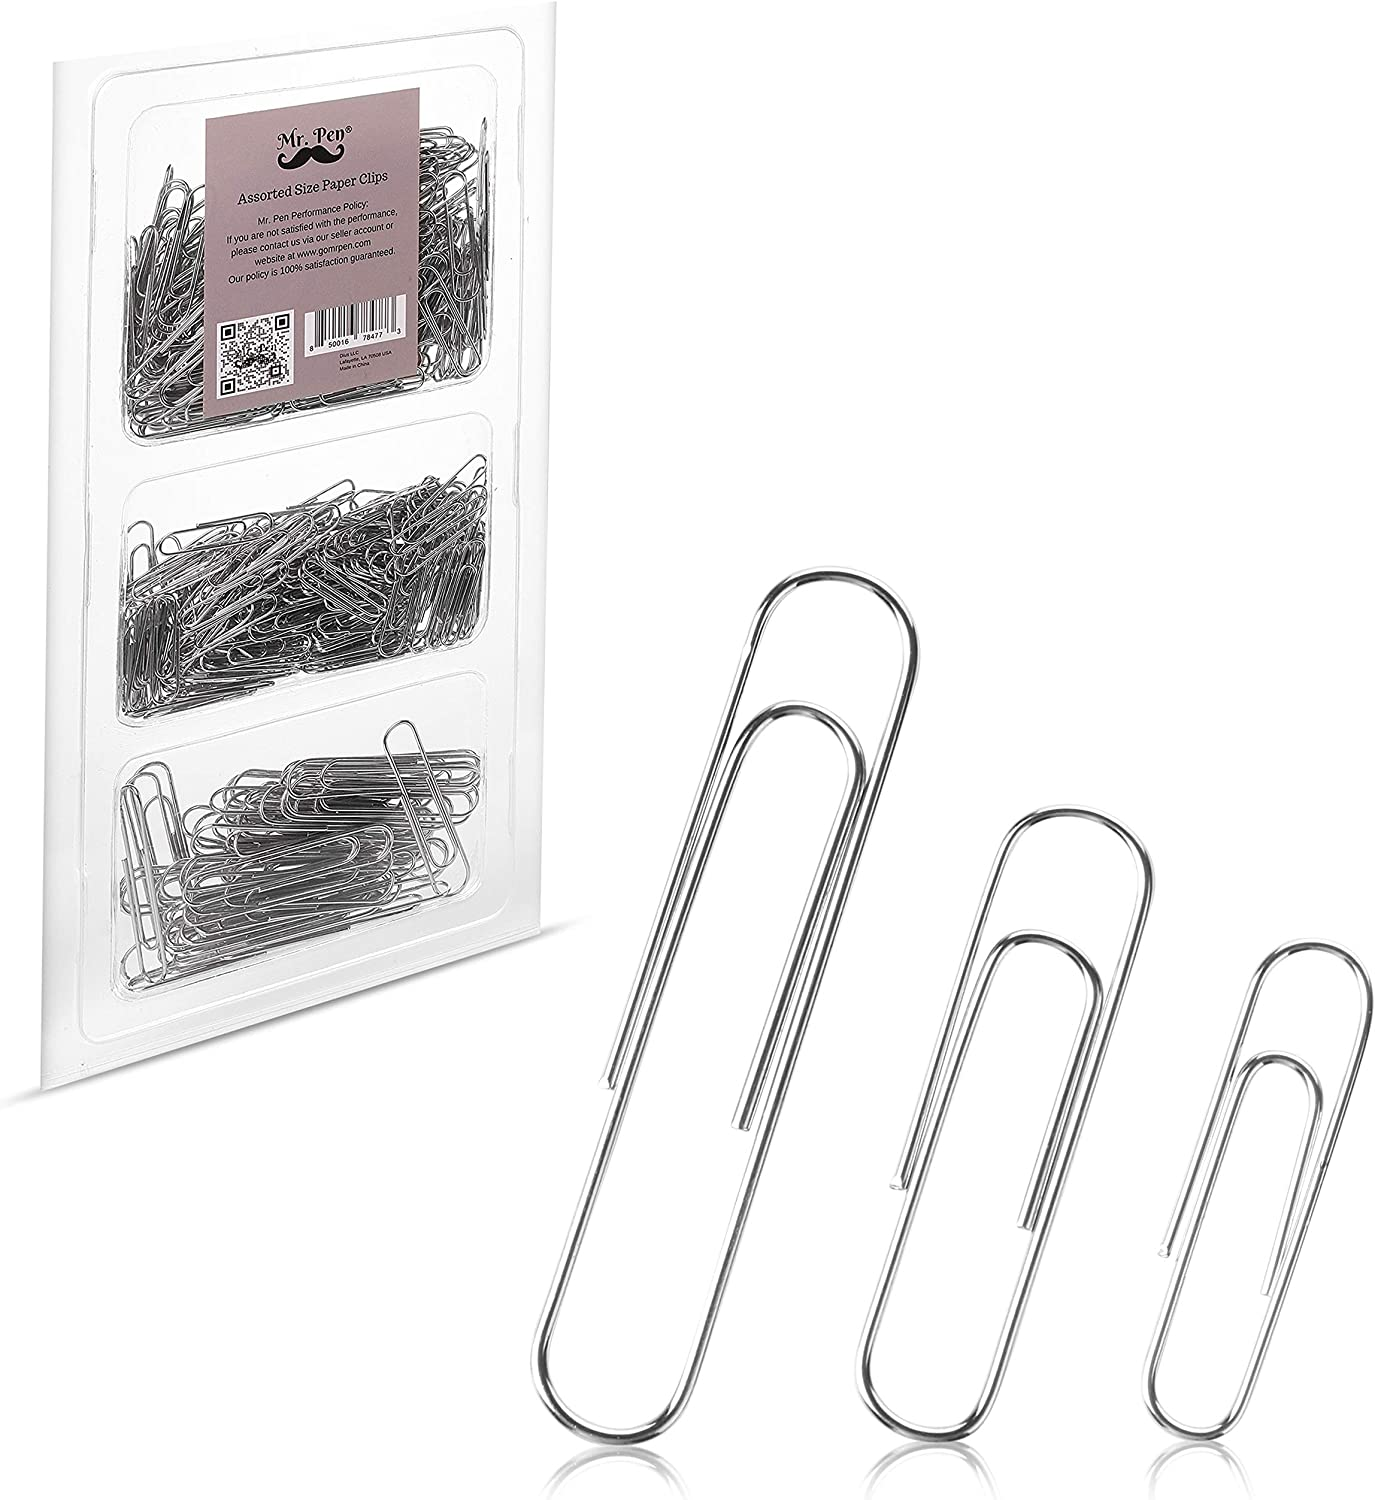 Mr. Pen- Paper Clips, 450 Pack, Silver, Paper Clips Assorted Sizes, Paperclips, Paper Clip, Large Paper Clips, Clips for Paperwork, Small Paper Clips, Big Paper Clips, Paper Clip Assortment, Clip : Office Products